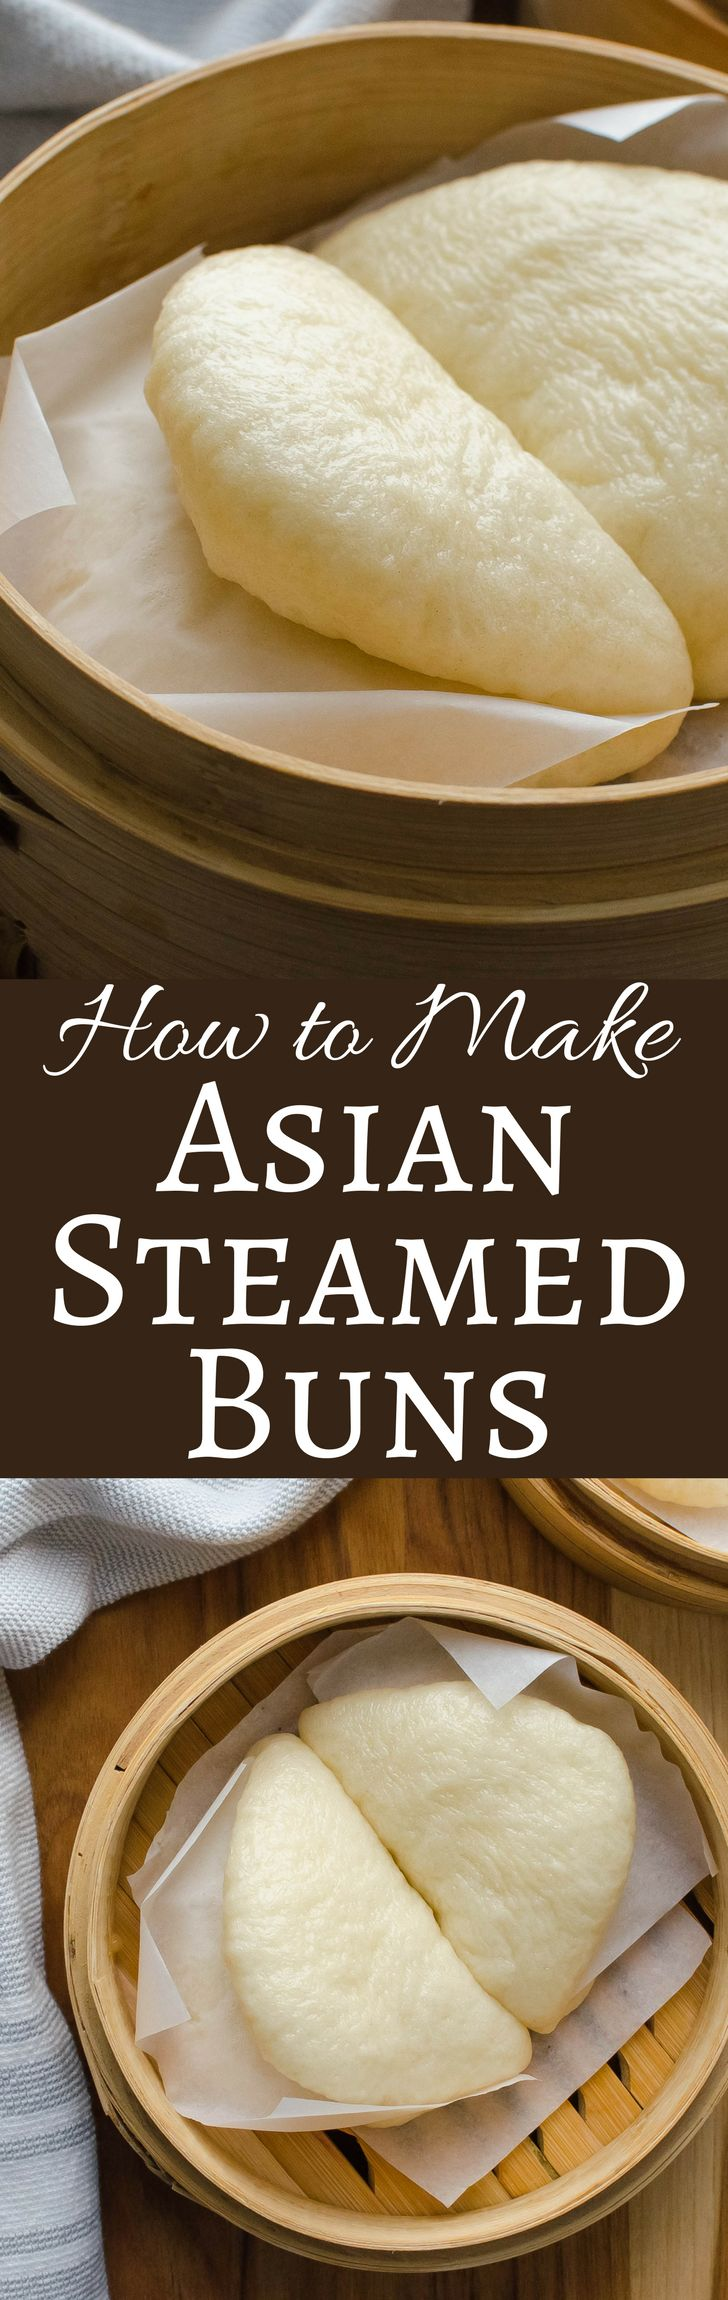 If you love Bao Buns, but have never made them, get this step-by-step recipe that will teach you how to make Asian Steamed Buns at home!